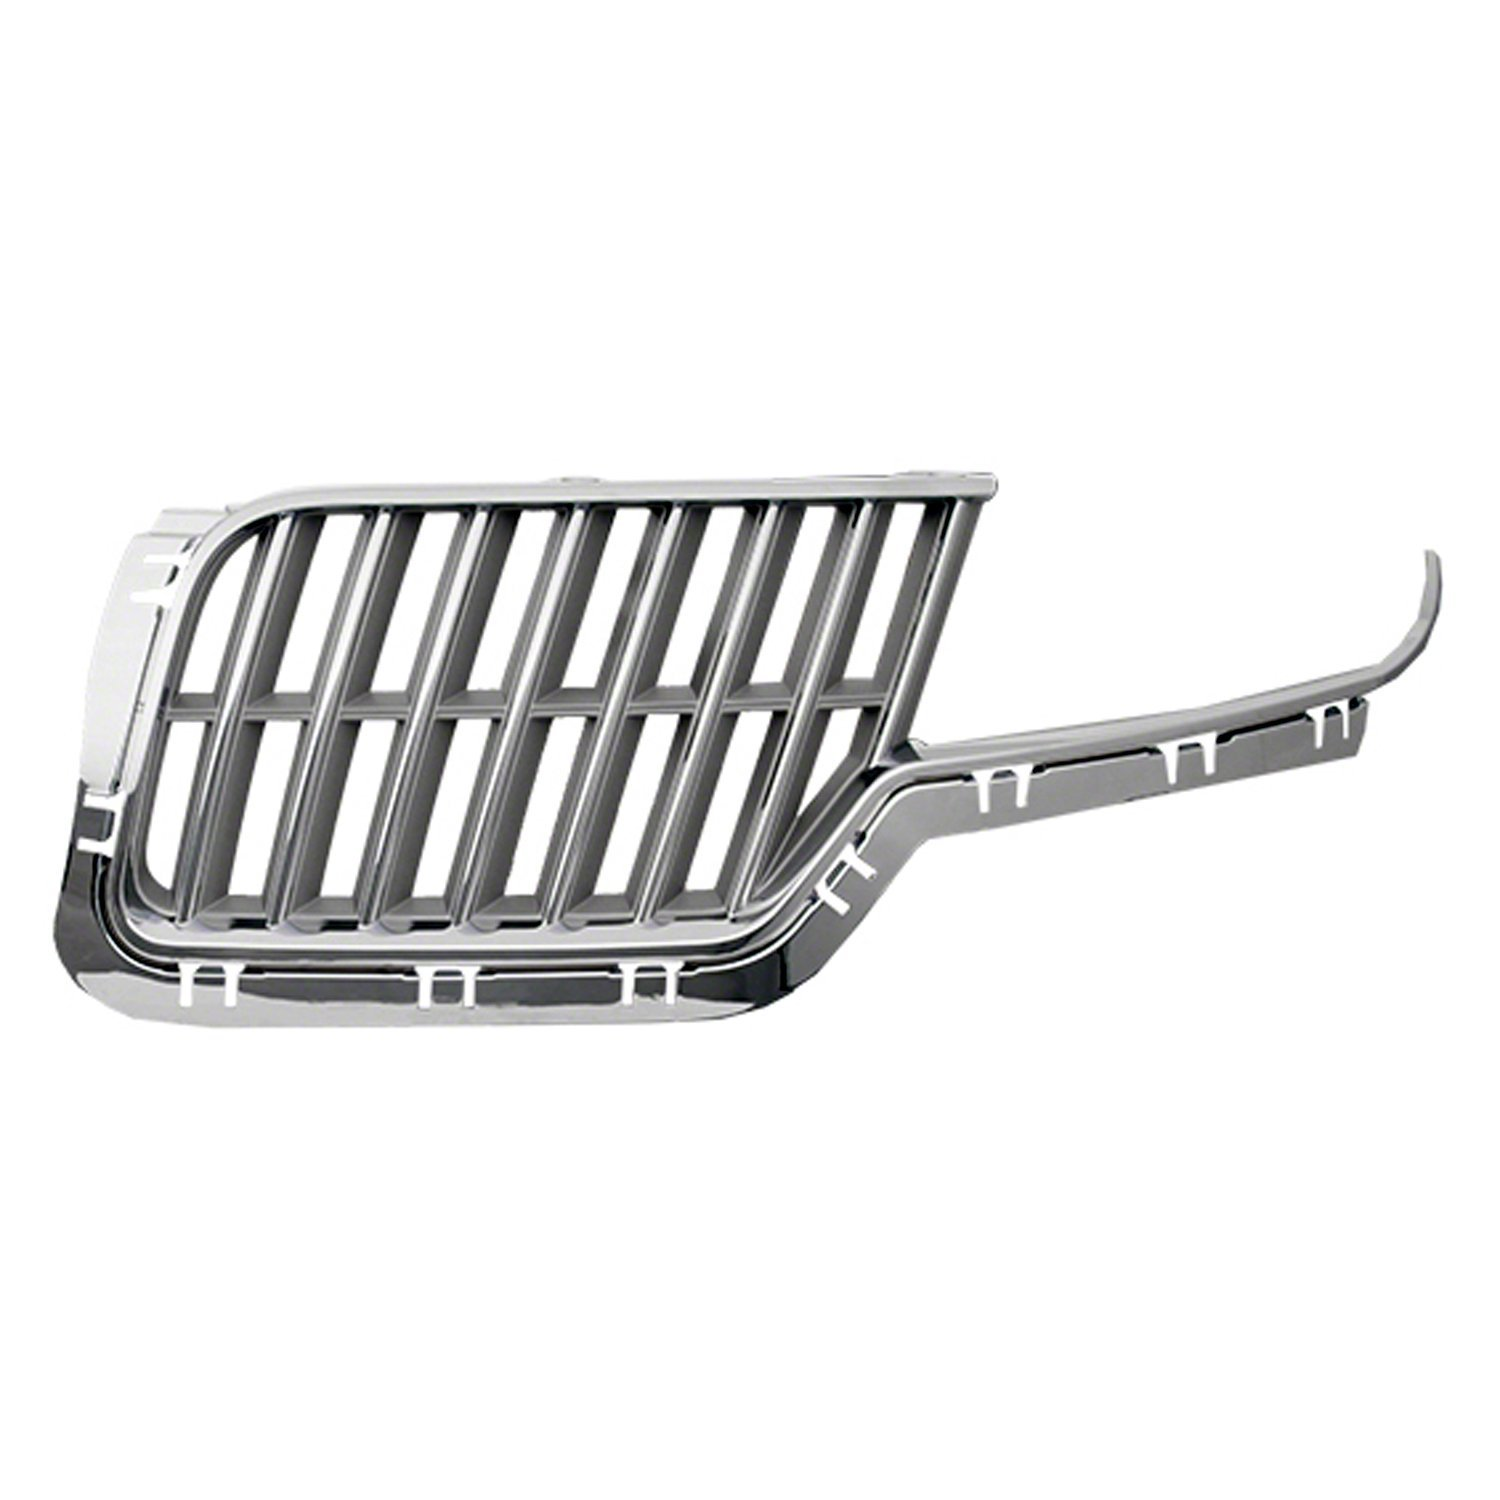 Chrome Front Grille Assembly for 2010-2012 Lincoln MKZ FO1200544